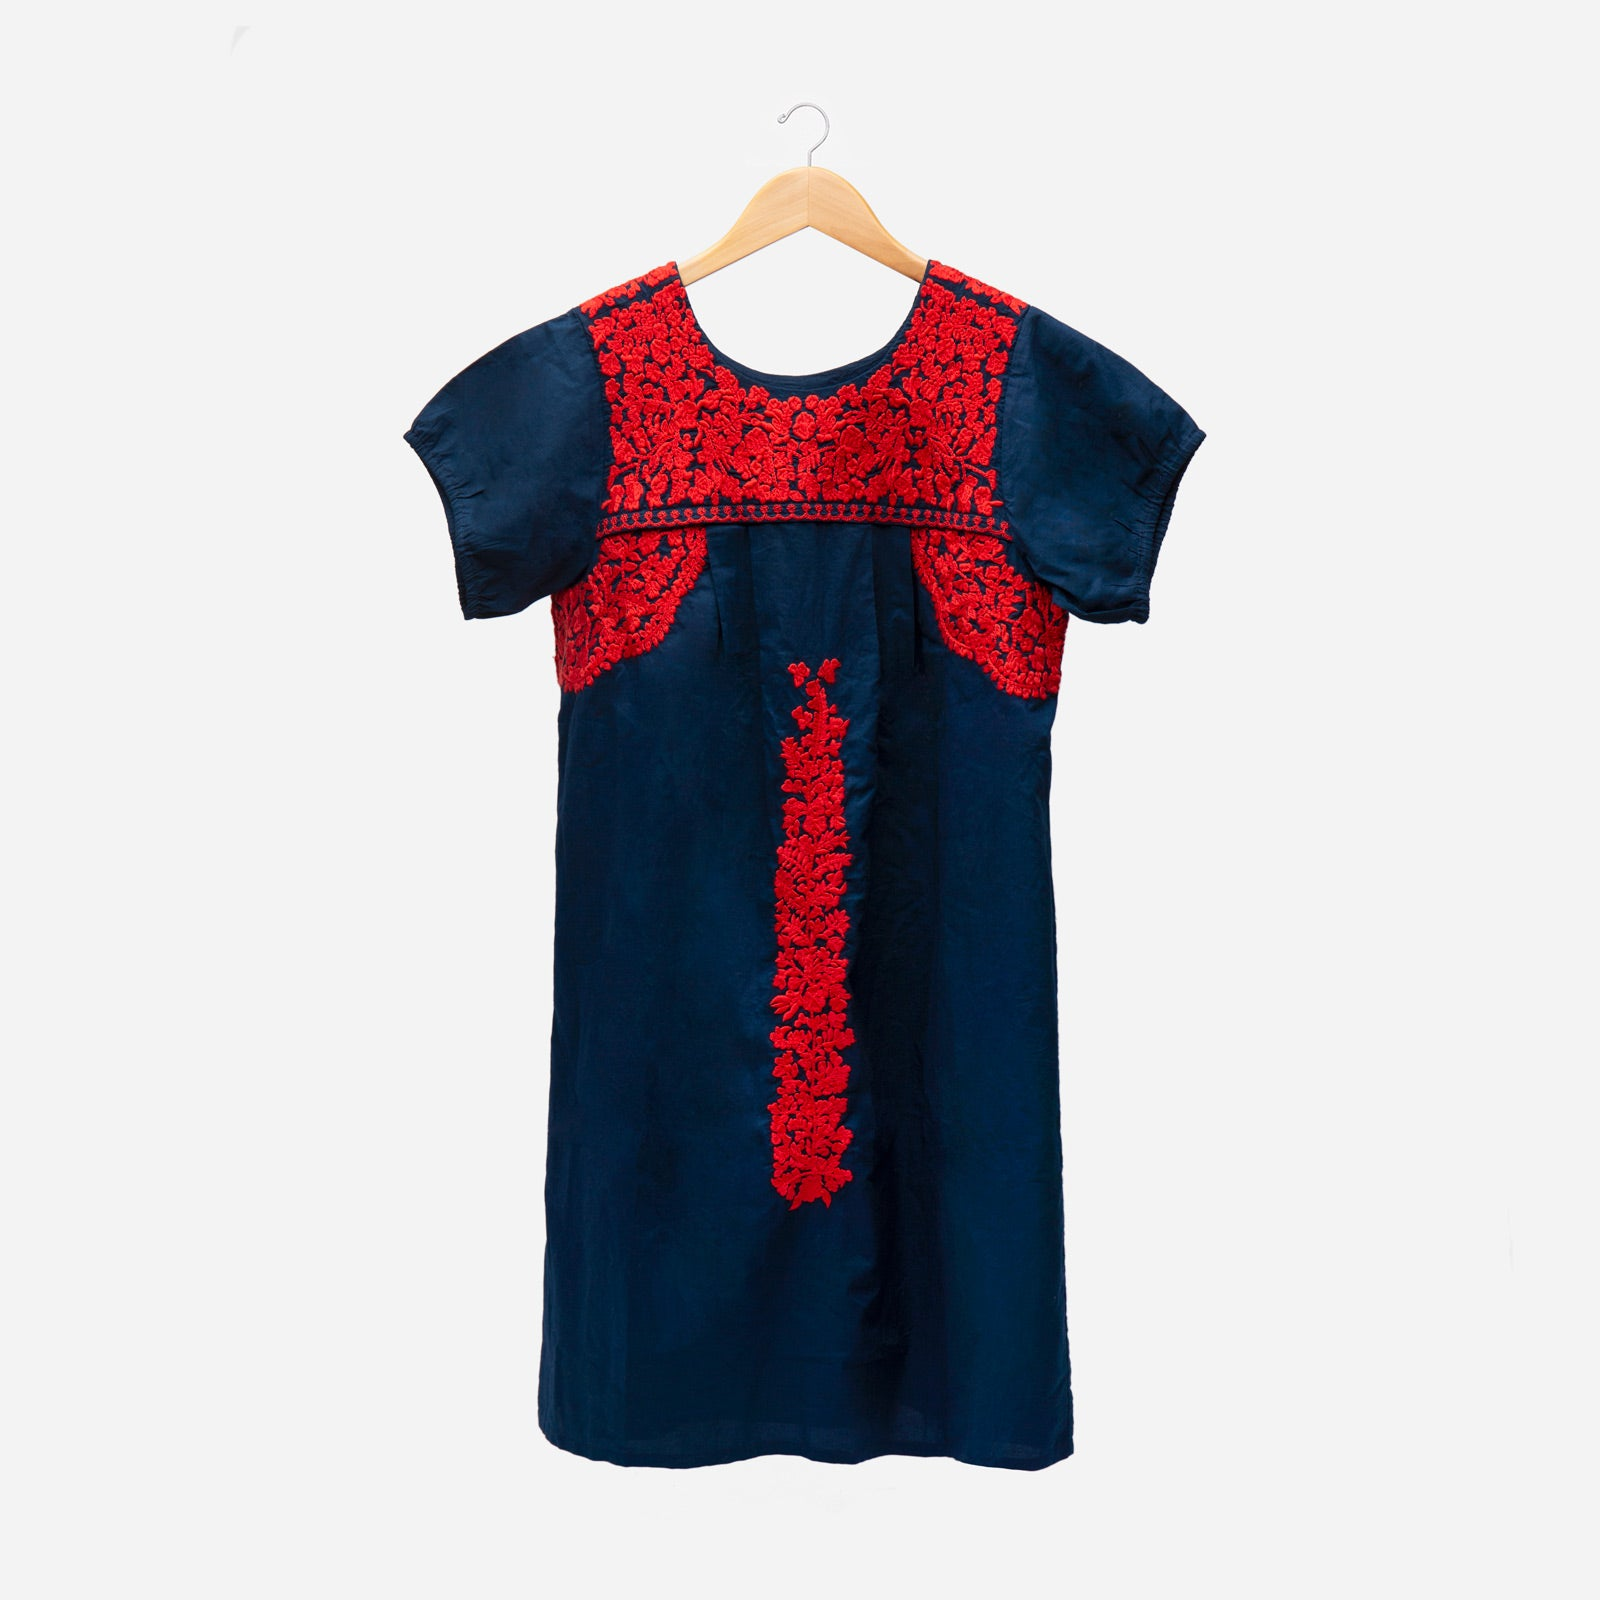 Floral Embroidered Lace Dress Navy Red - Frances Valentine